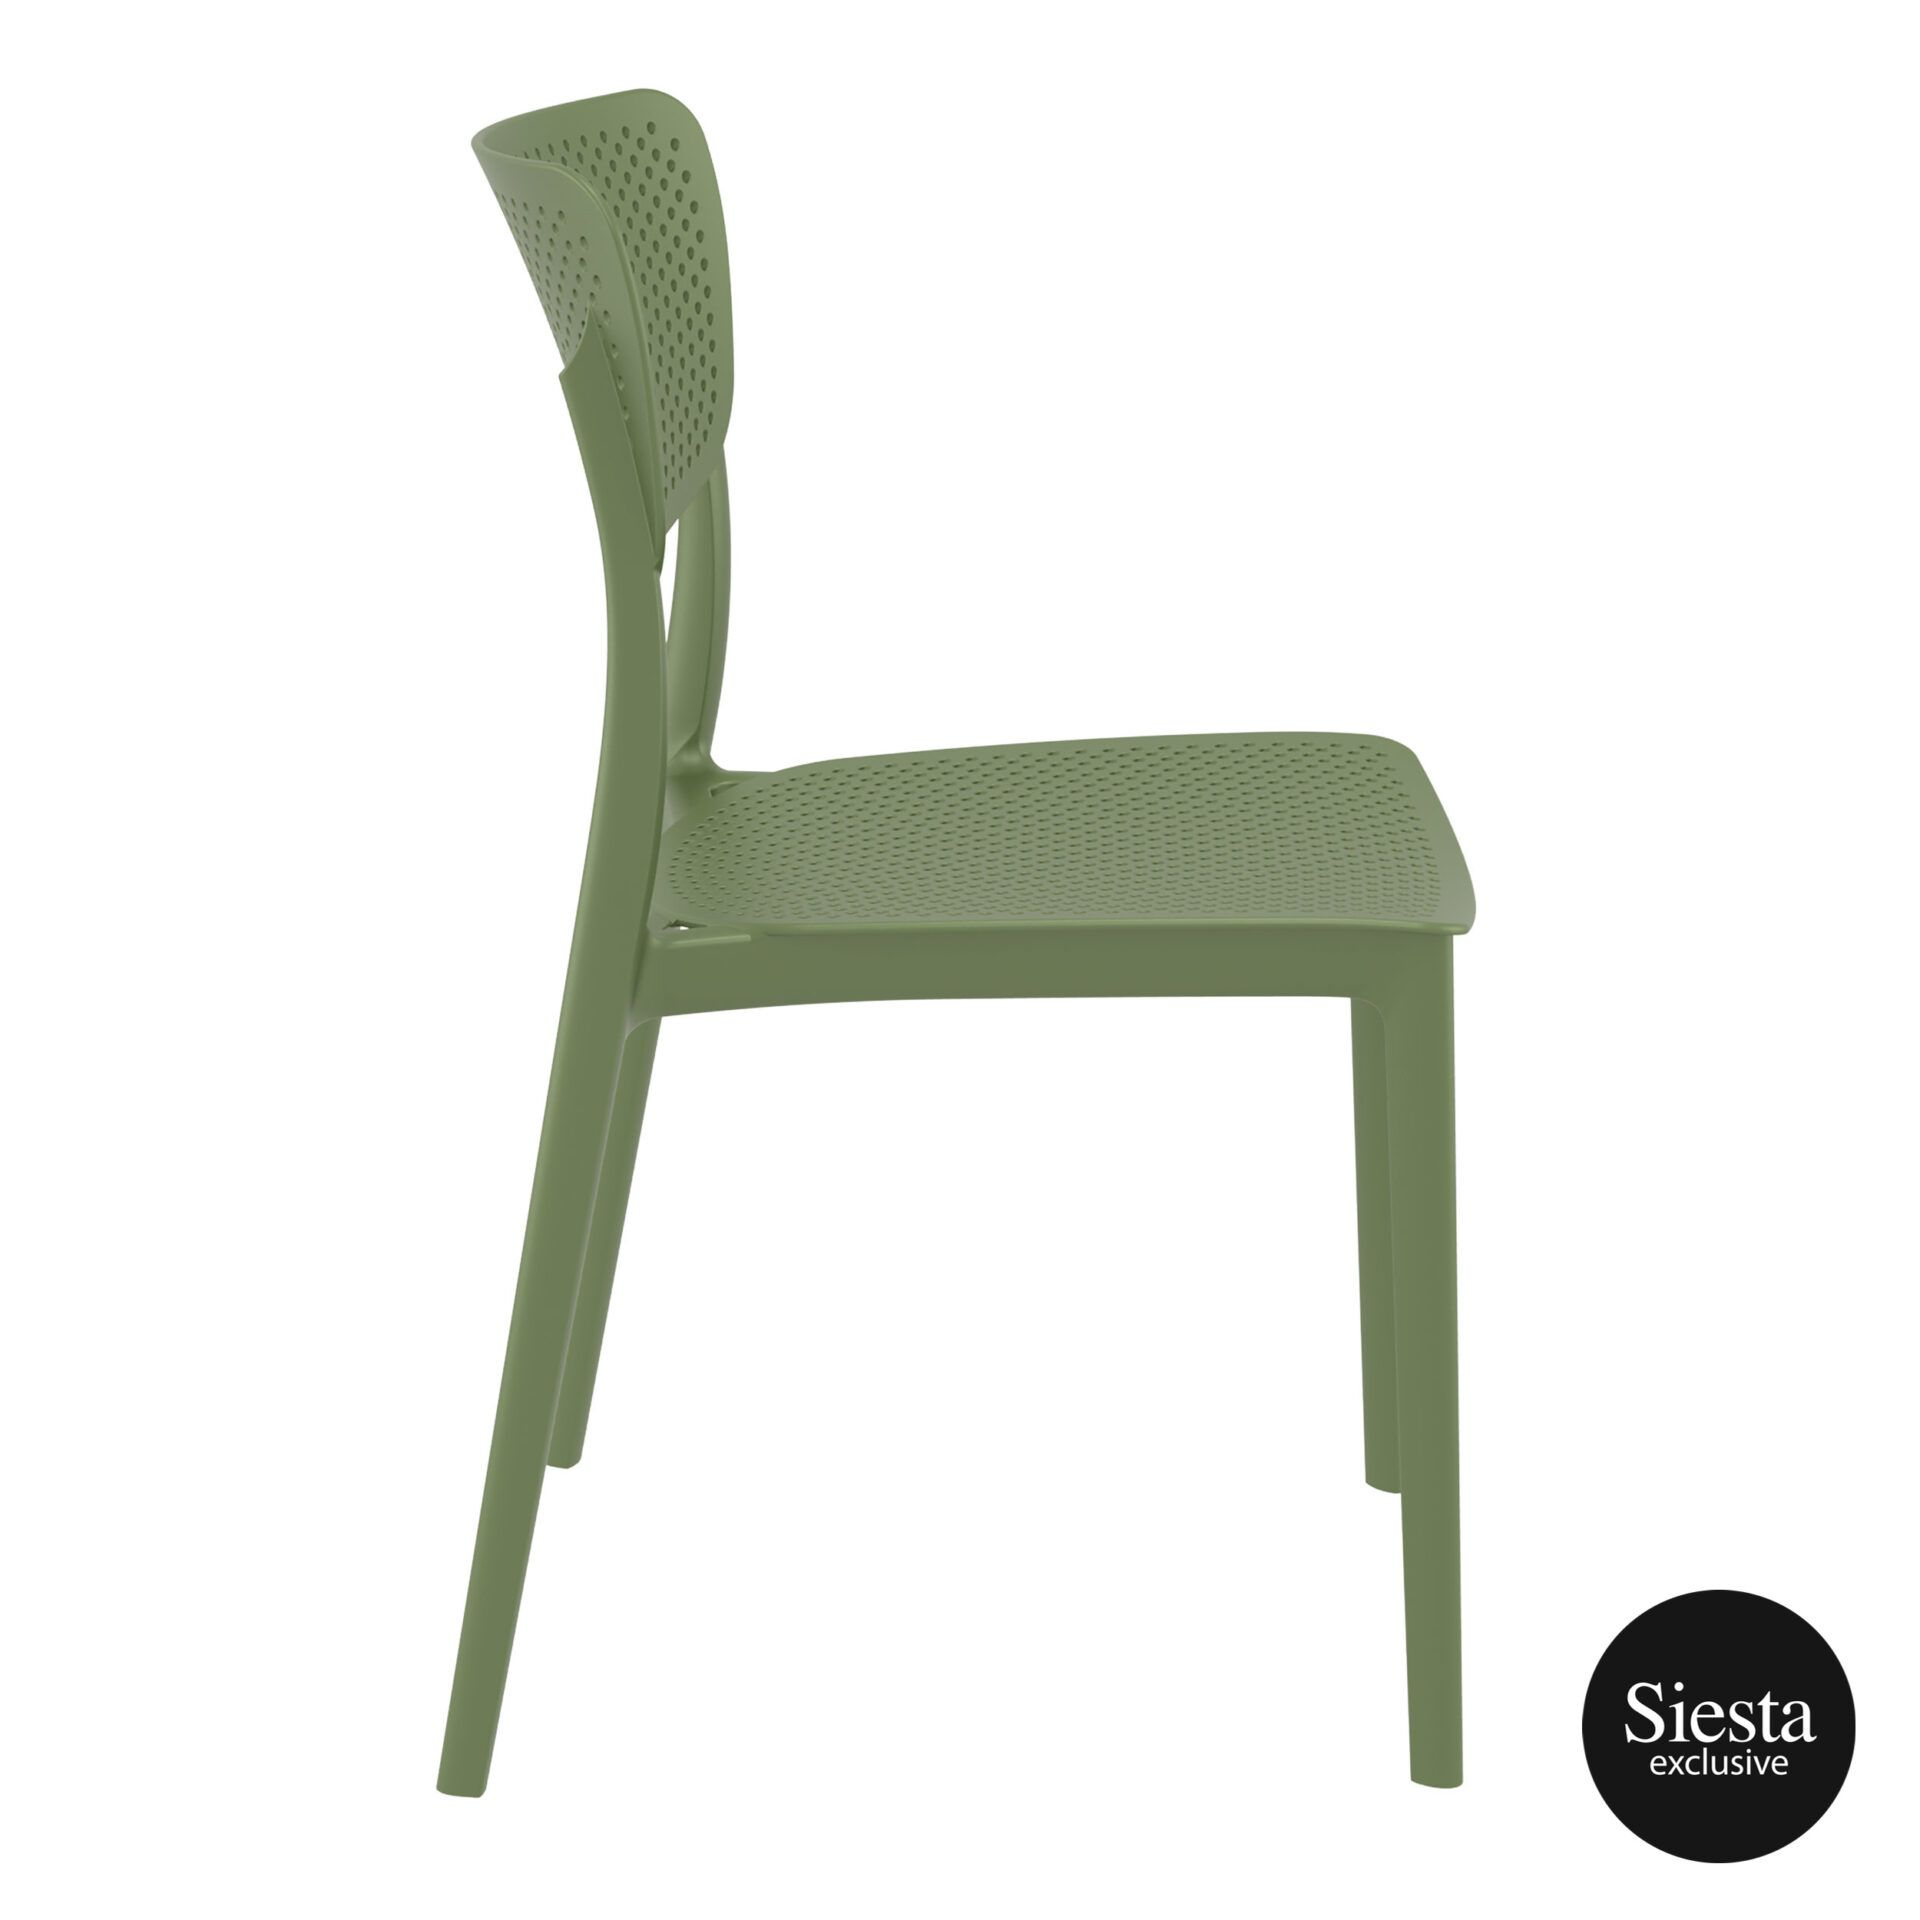 polypropylene hospitality seating lucy chair olive green side 1